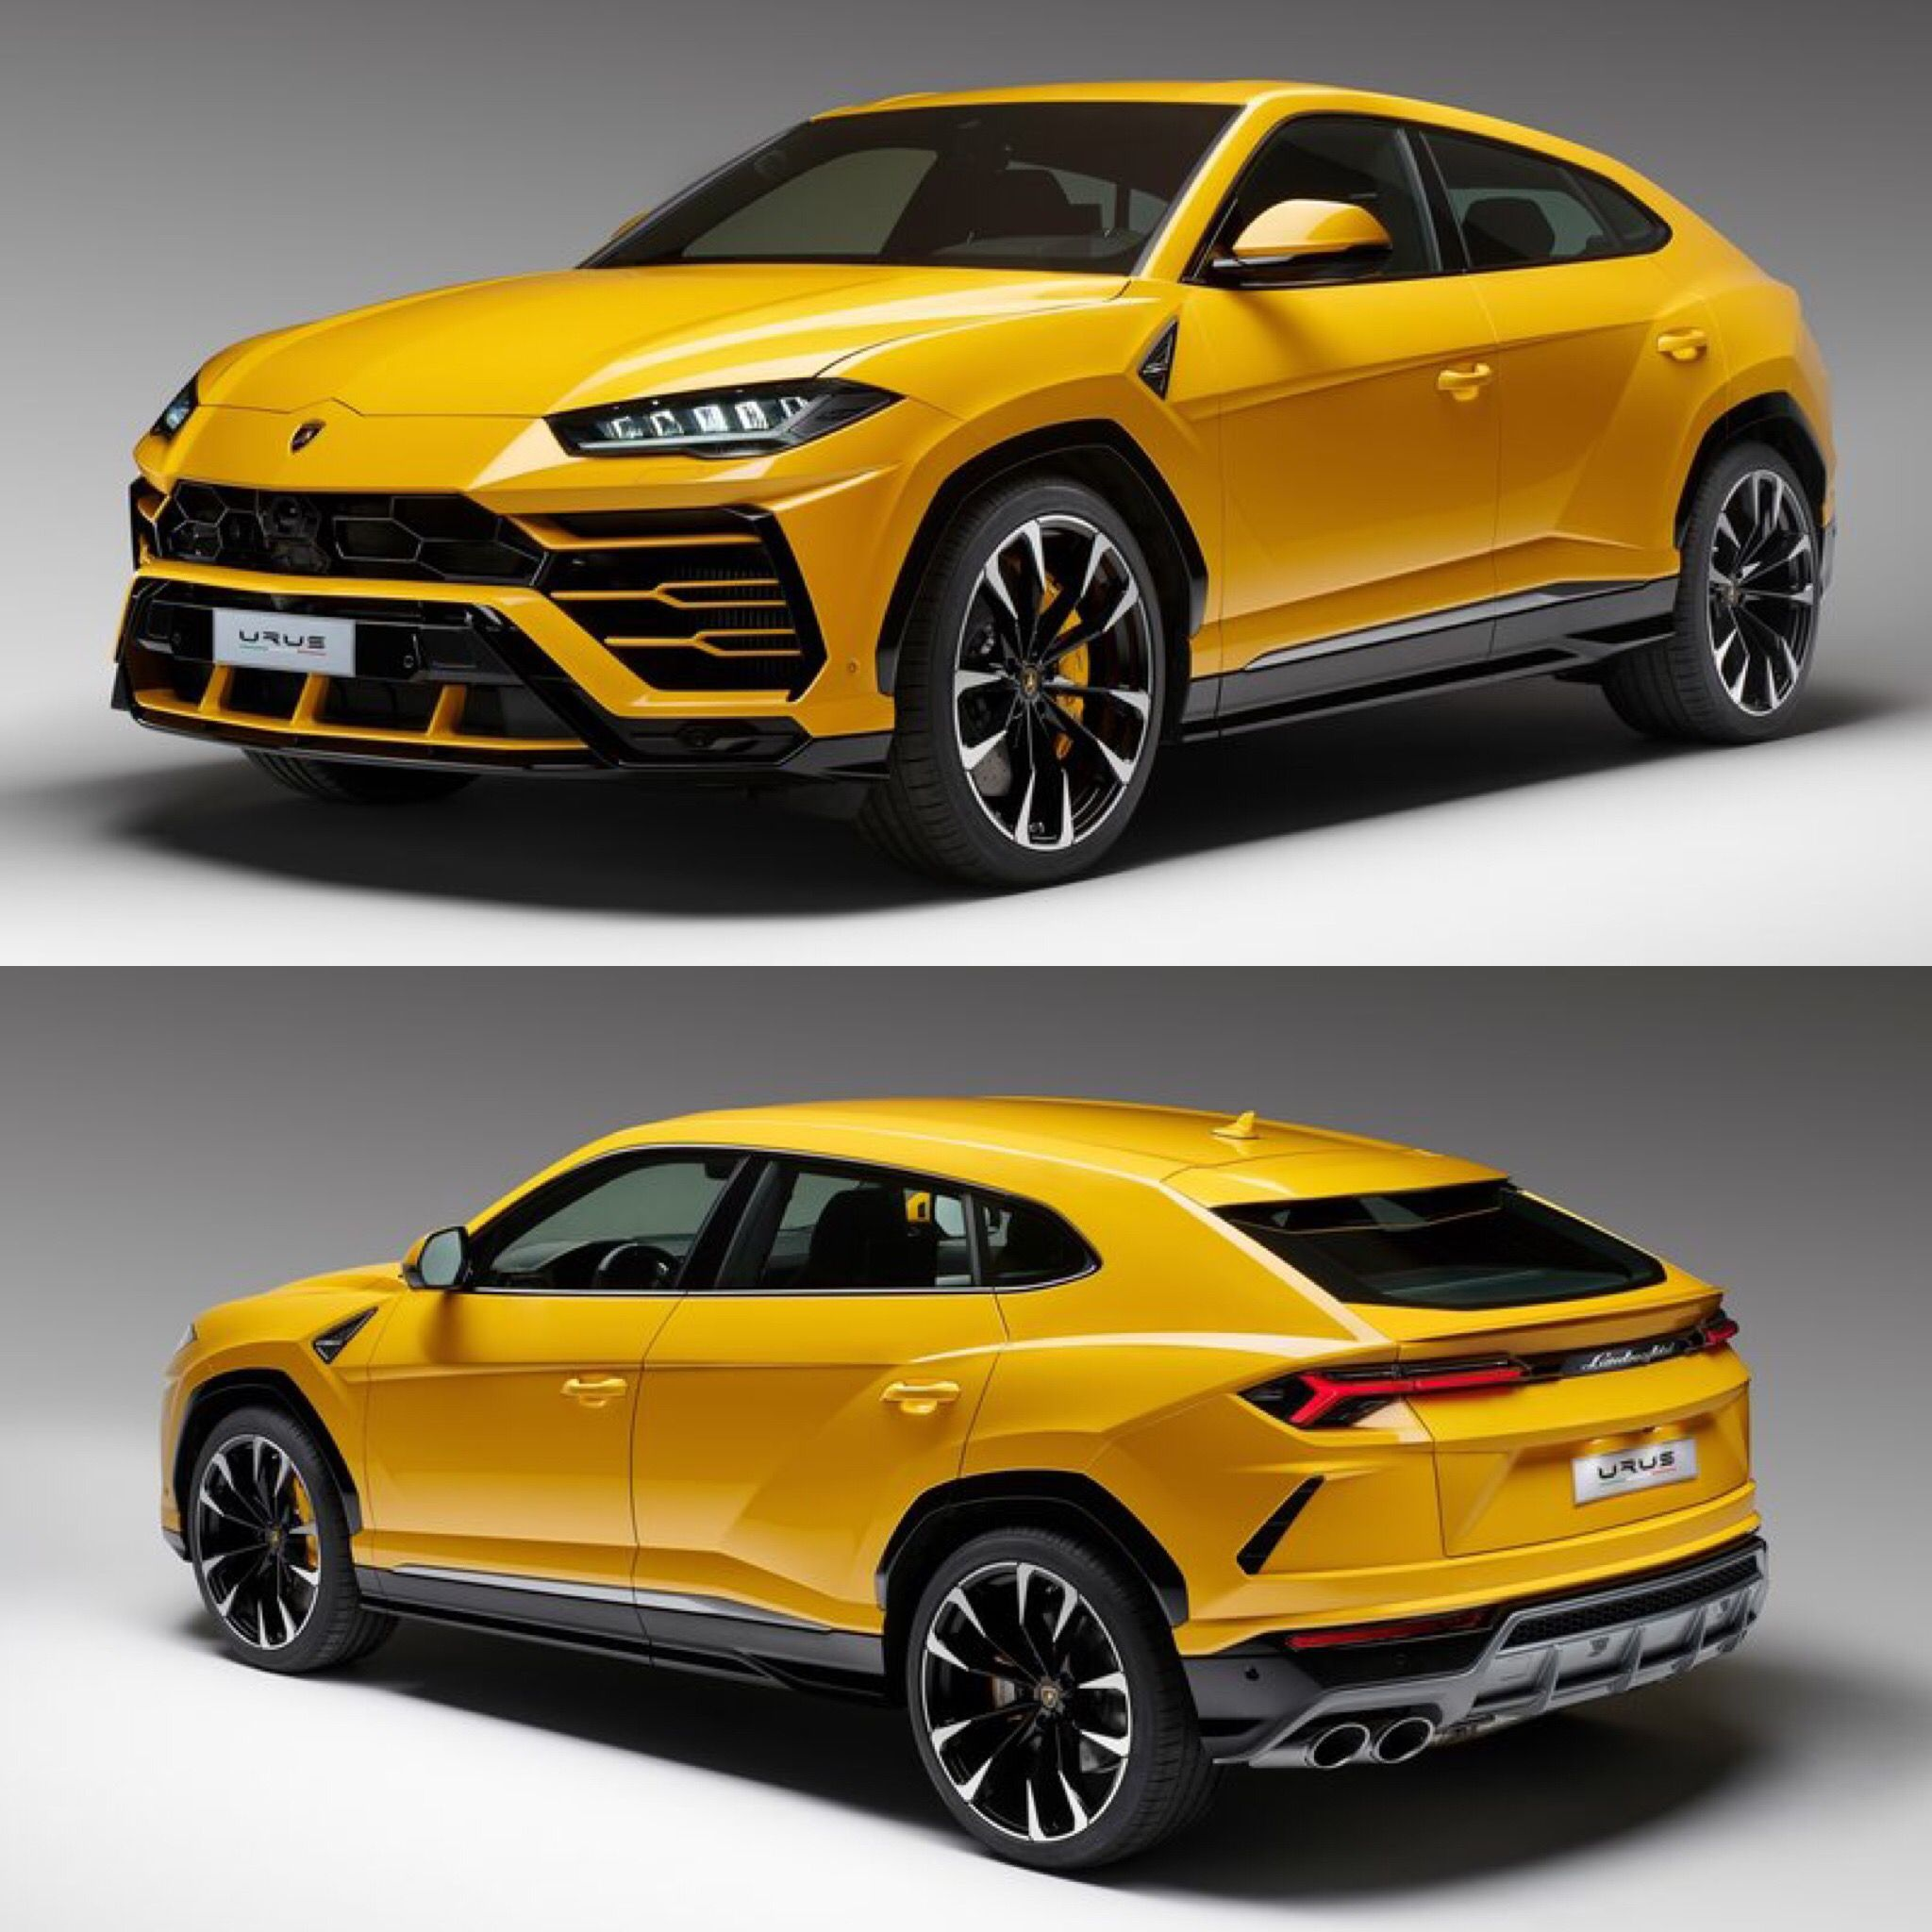 Perfect 2019 Lamborghini Urus. Sure This Is A Super Hotwheel Car But It Seams To Be  Missing Some Aerodynamic Details !